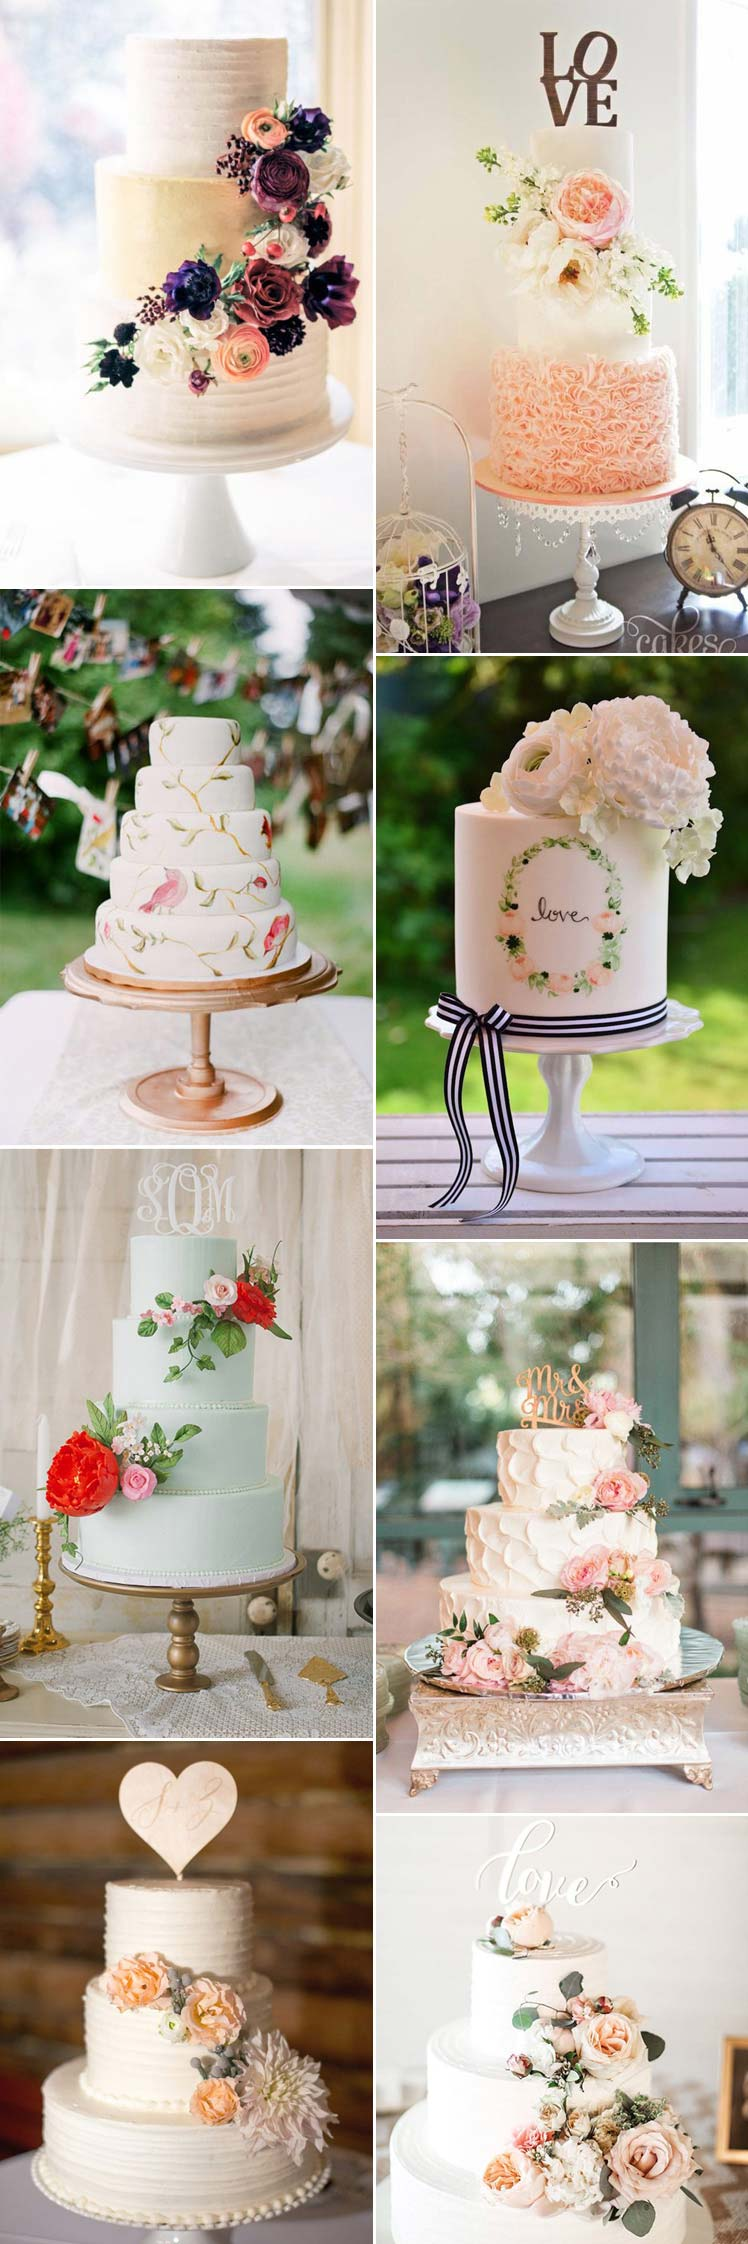 Inspiration for choosing a wedding cake for your Valentine's day